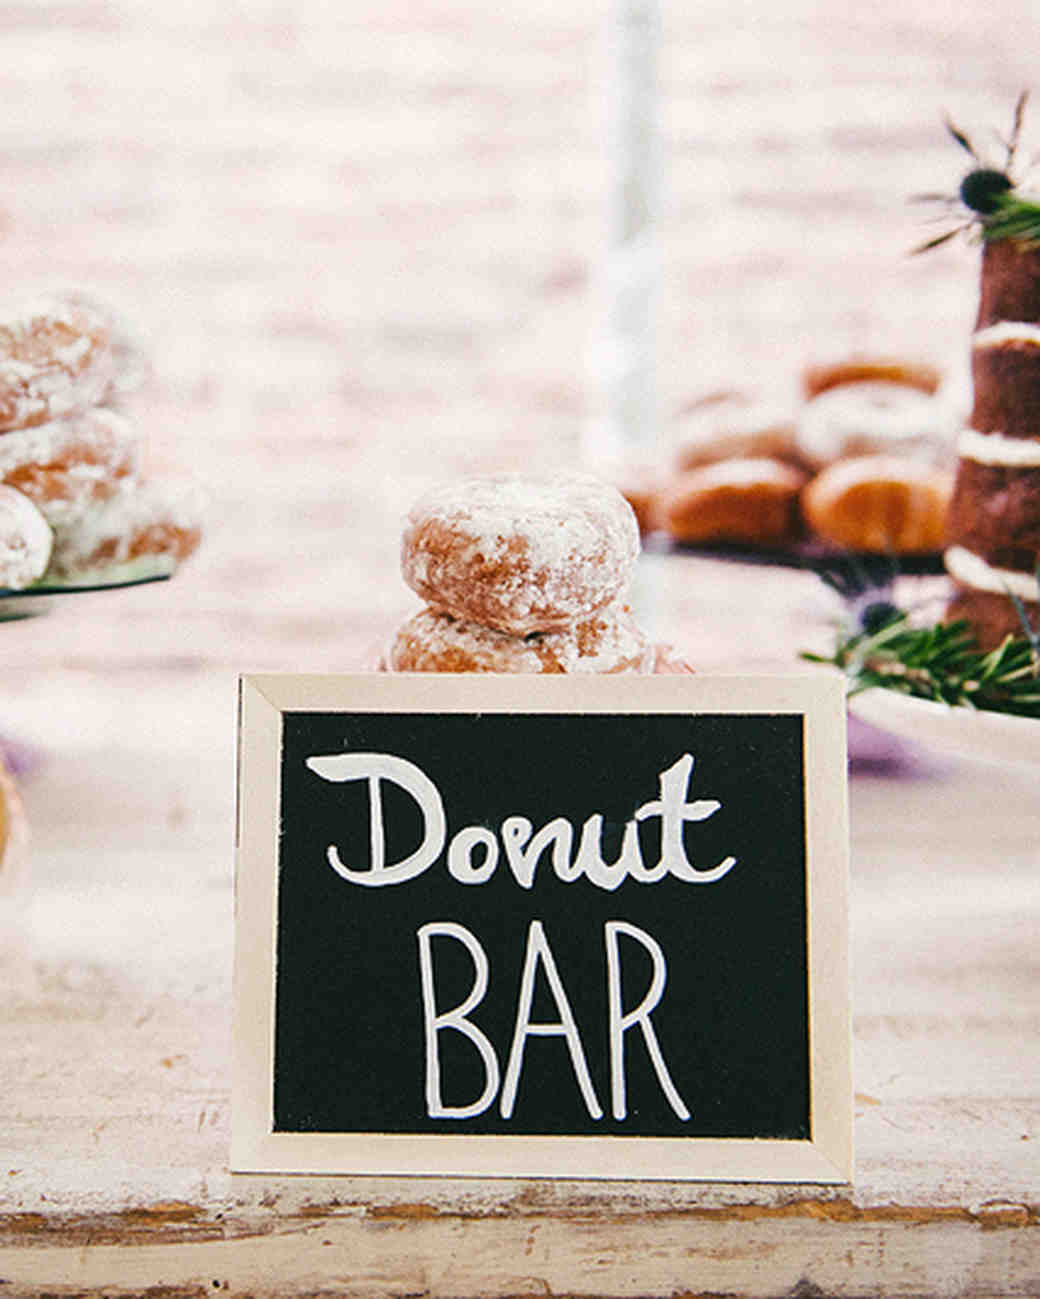 wedding-brunch-ideas-donut-bar-0416.jpg